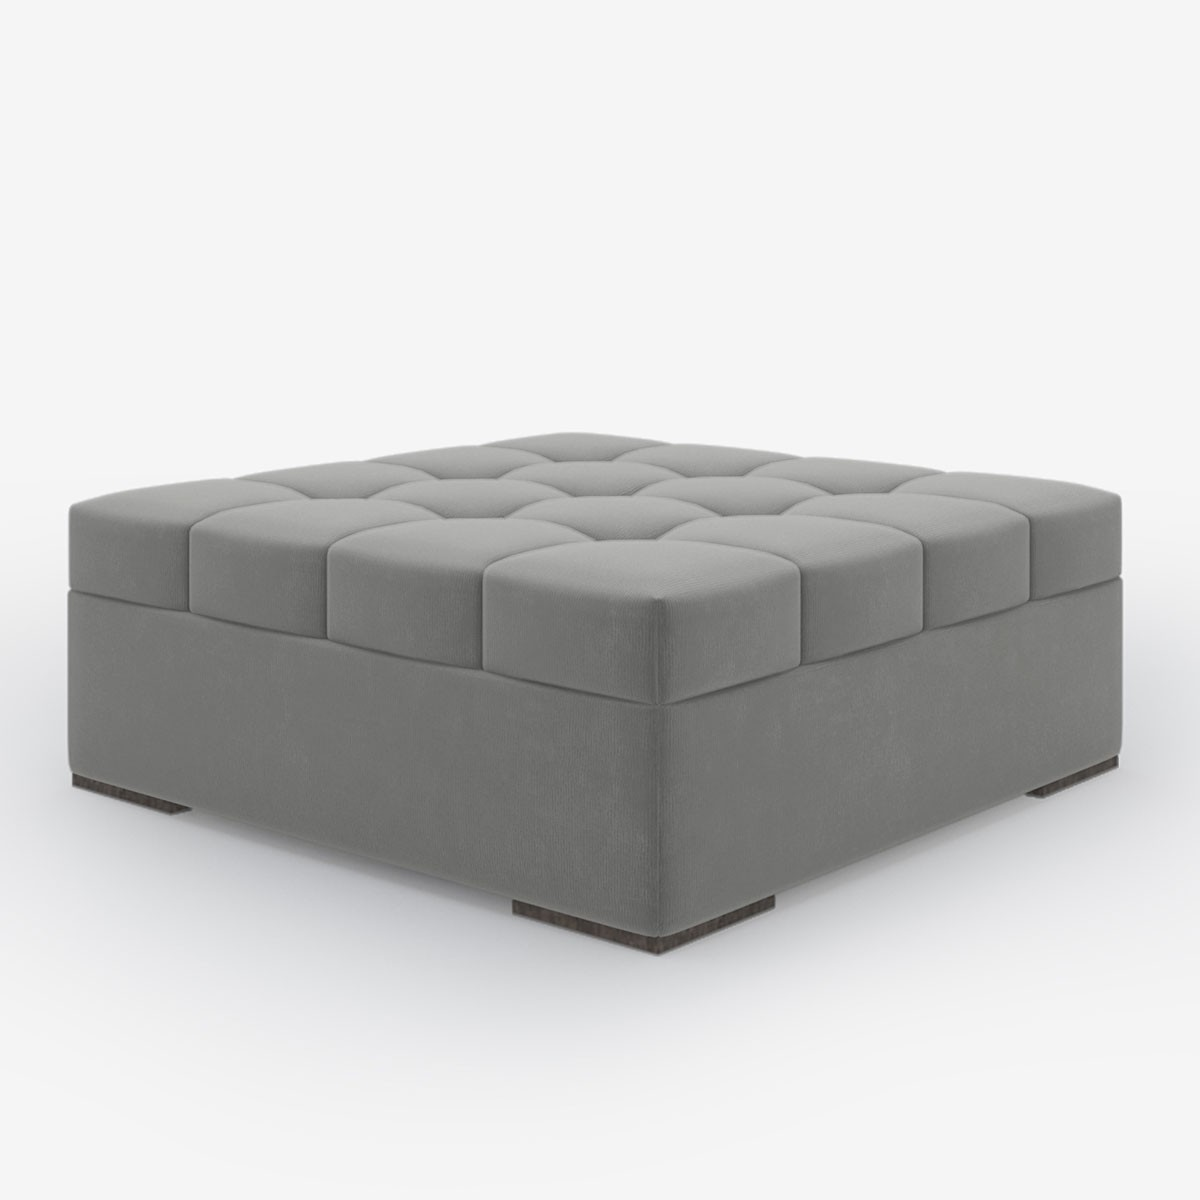 Image shows Button Top Coffee Table in Studio Linen Silver Grey